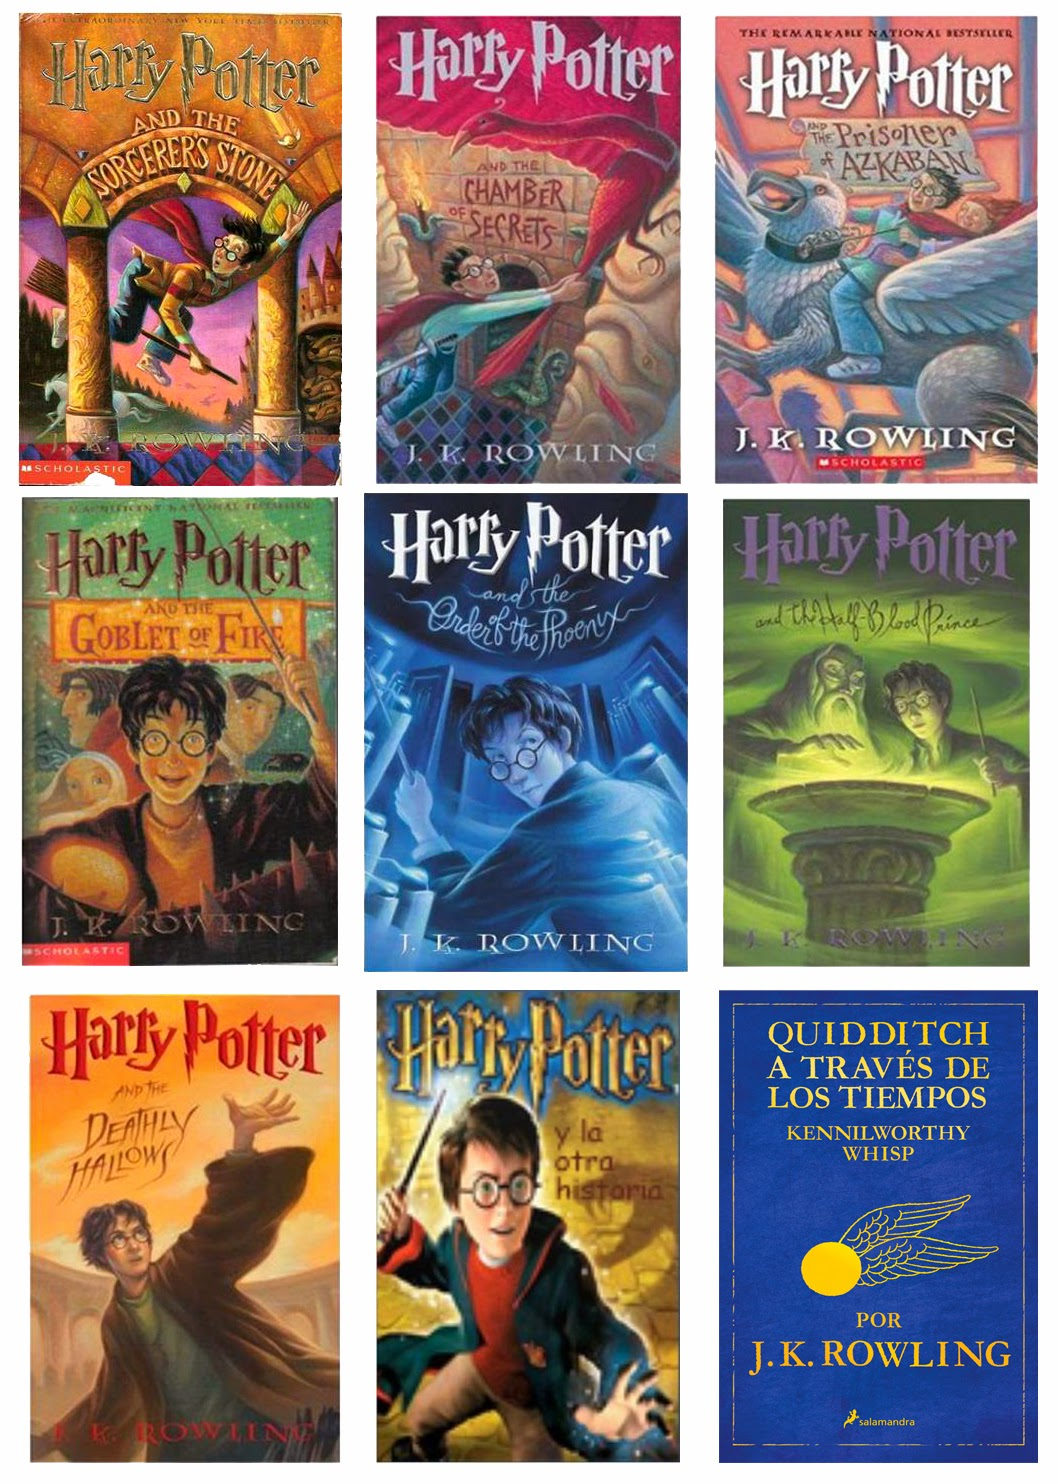 Harry Potter Libros Pdf Libros De Harry Potter Formato Pdf Mega Descargar Gratis